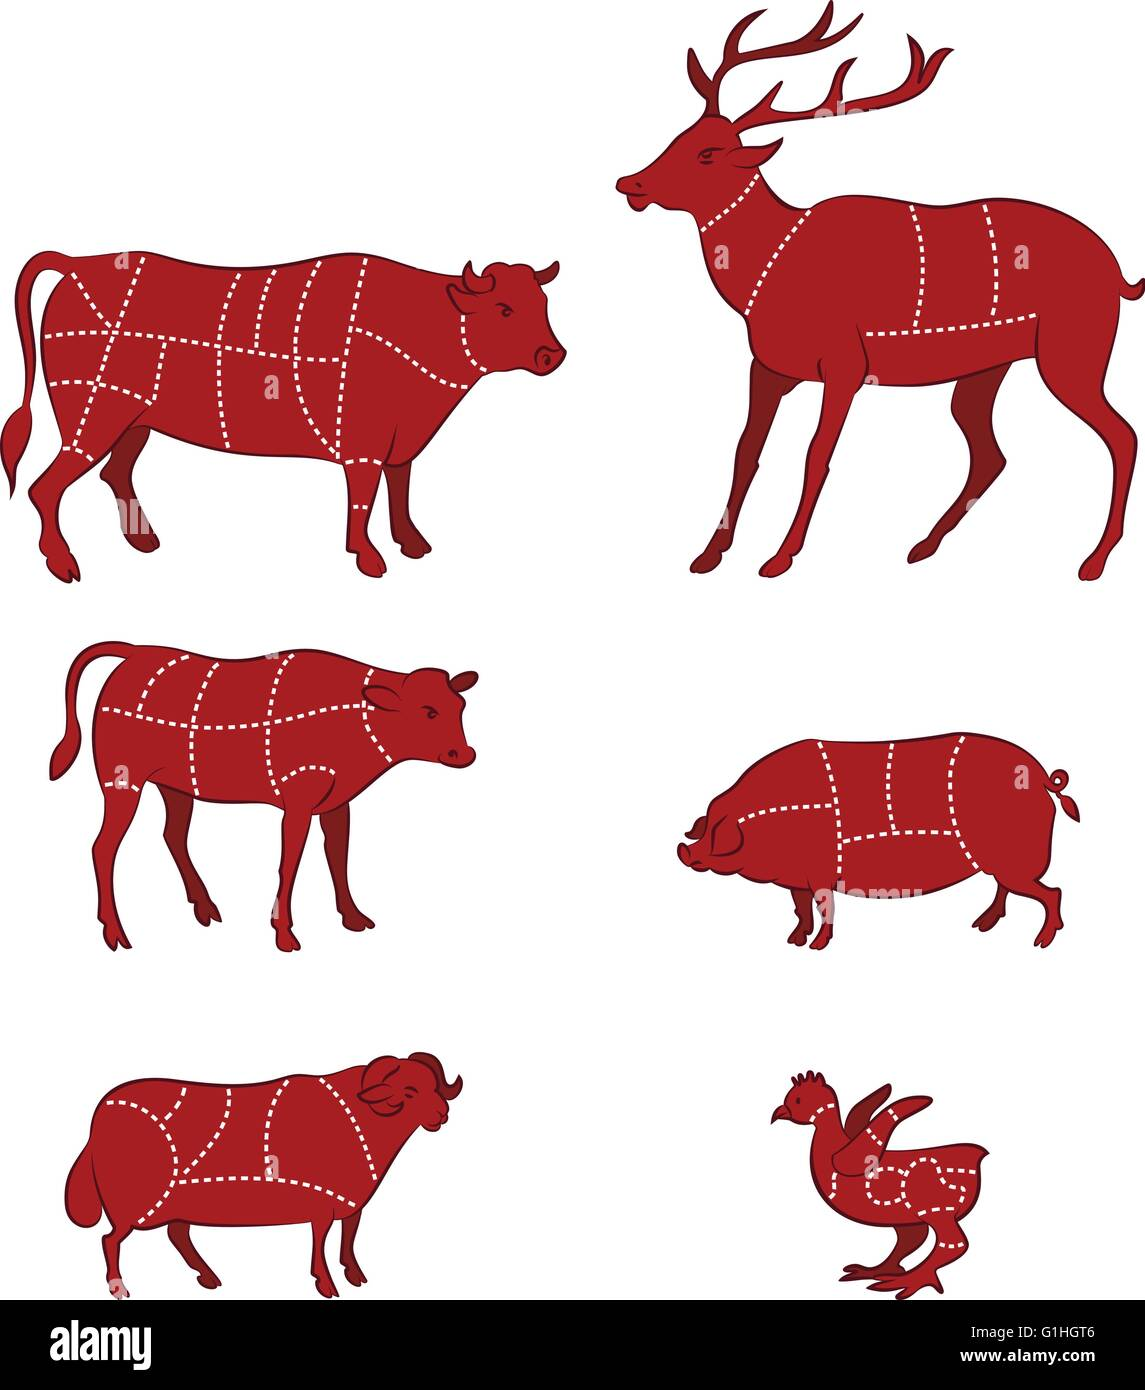 vector illustration of Diagram Guide for Cutting Meat - Stock Image